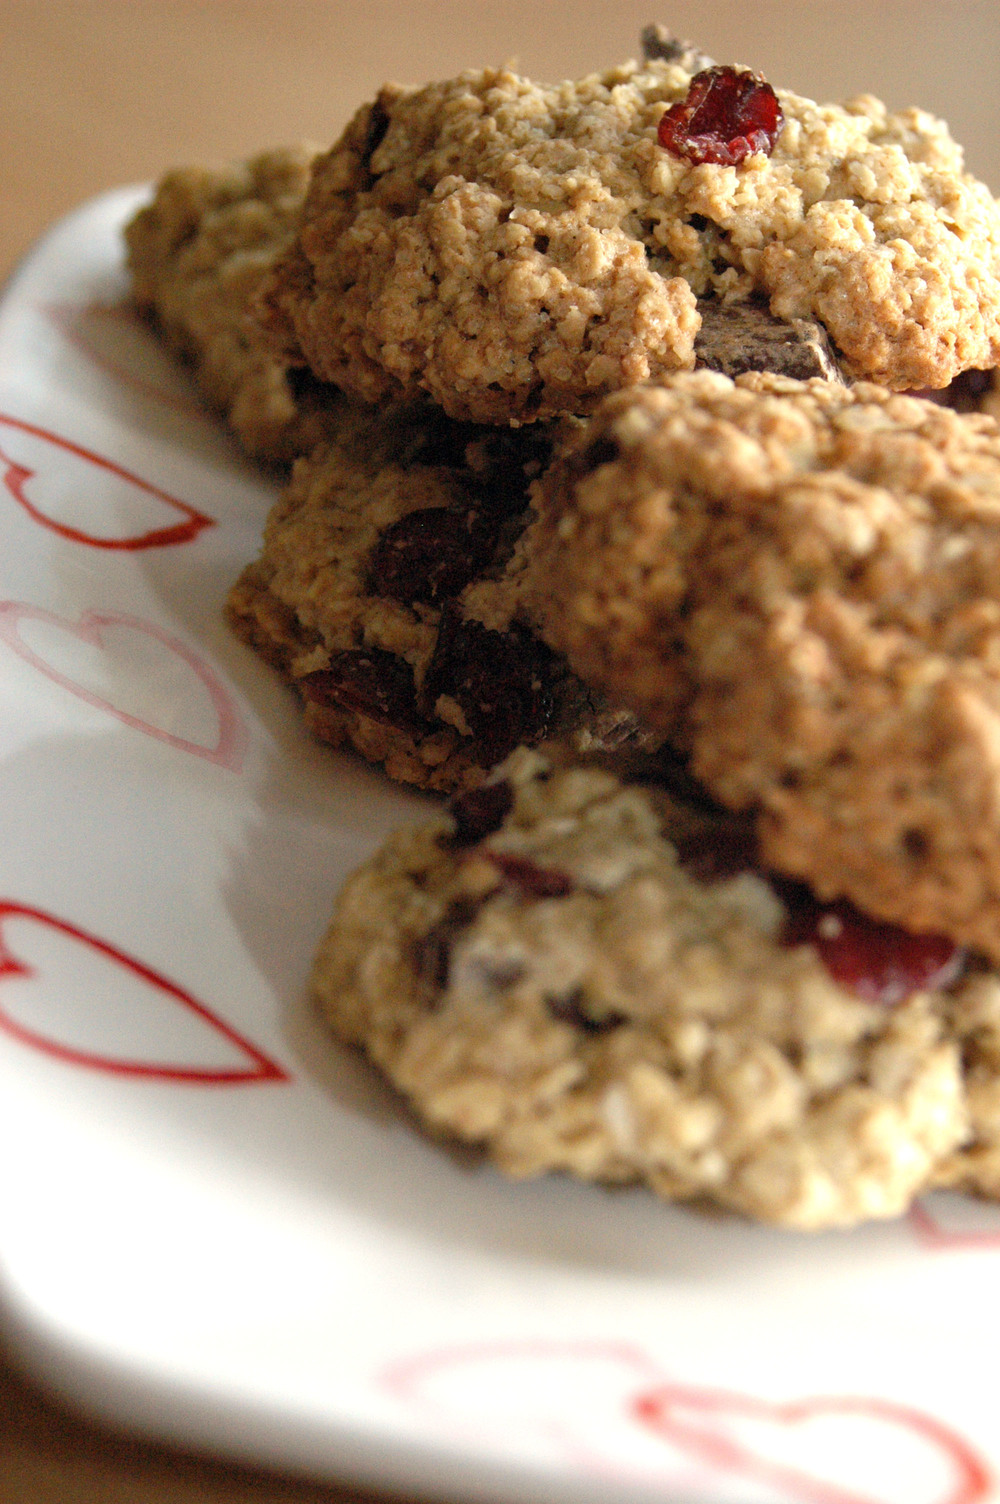 Chocolate and Cranberry Oat Cookies